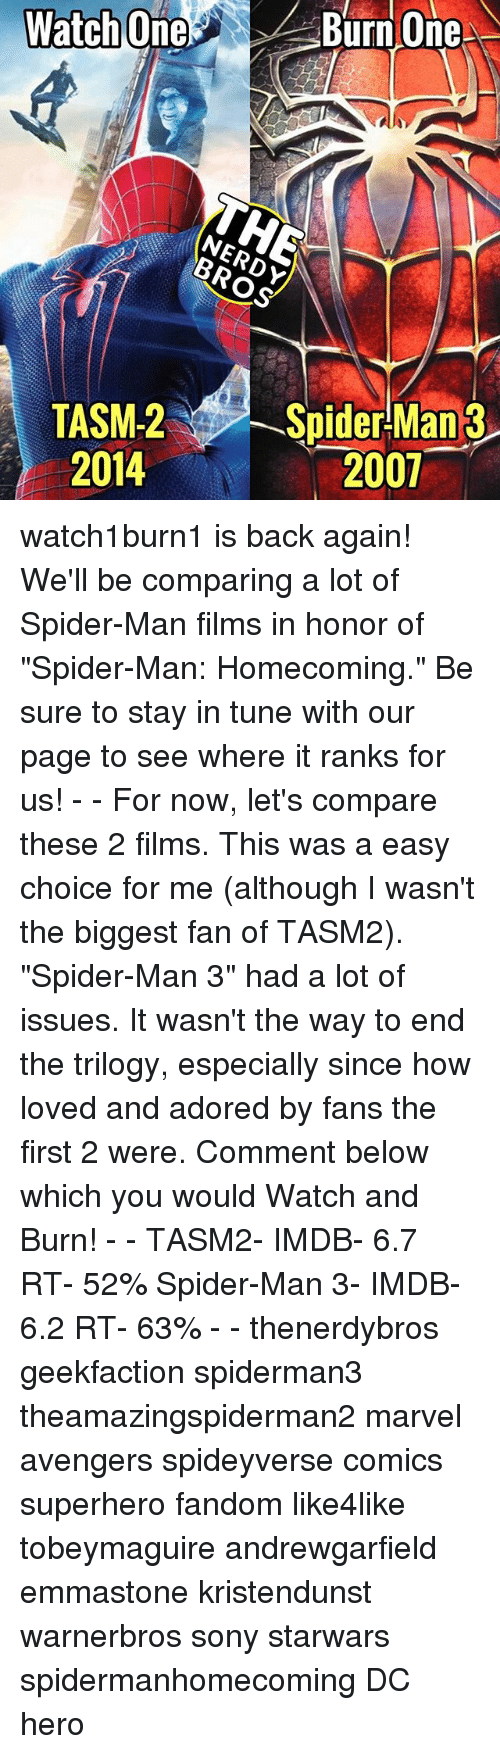 """emmastone: NERDY  BROS  TASM:2  2014  Spider-Man3  2007 watch1burn1 is back again! We'll be comparing a lot of Spider-Man films in honor of """"Spider-Man: Homecoming."""" Be sure to stay in tune with our page to see where it ranks for us! - - For now, let's compare these 2 films. This was a easy choice for me (although I wasn't the biggest fan of TASM2). """"Spider-Man 3"""" had a lot of issues. It wasn't the way to end the trilogy, especially since how loved and adored by fans the first 2 were. Comment below which you would Watch and Burn! - - TASM2- IMDB- 6.7 RT- 52% Spider-Man 3- IMDB- 6.2 RT- 63% - - thenerdybros geekfaction spiderman3 theamazingspiderman2 marvel avengers spideyverse comics superhero fandom like4like tobeymaguire andrewgarfield emmastone kristendunst warnerbros sony starwars spidermanhomecoming DC hero"""